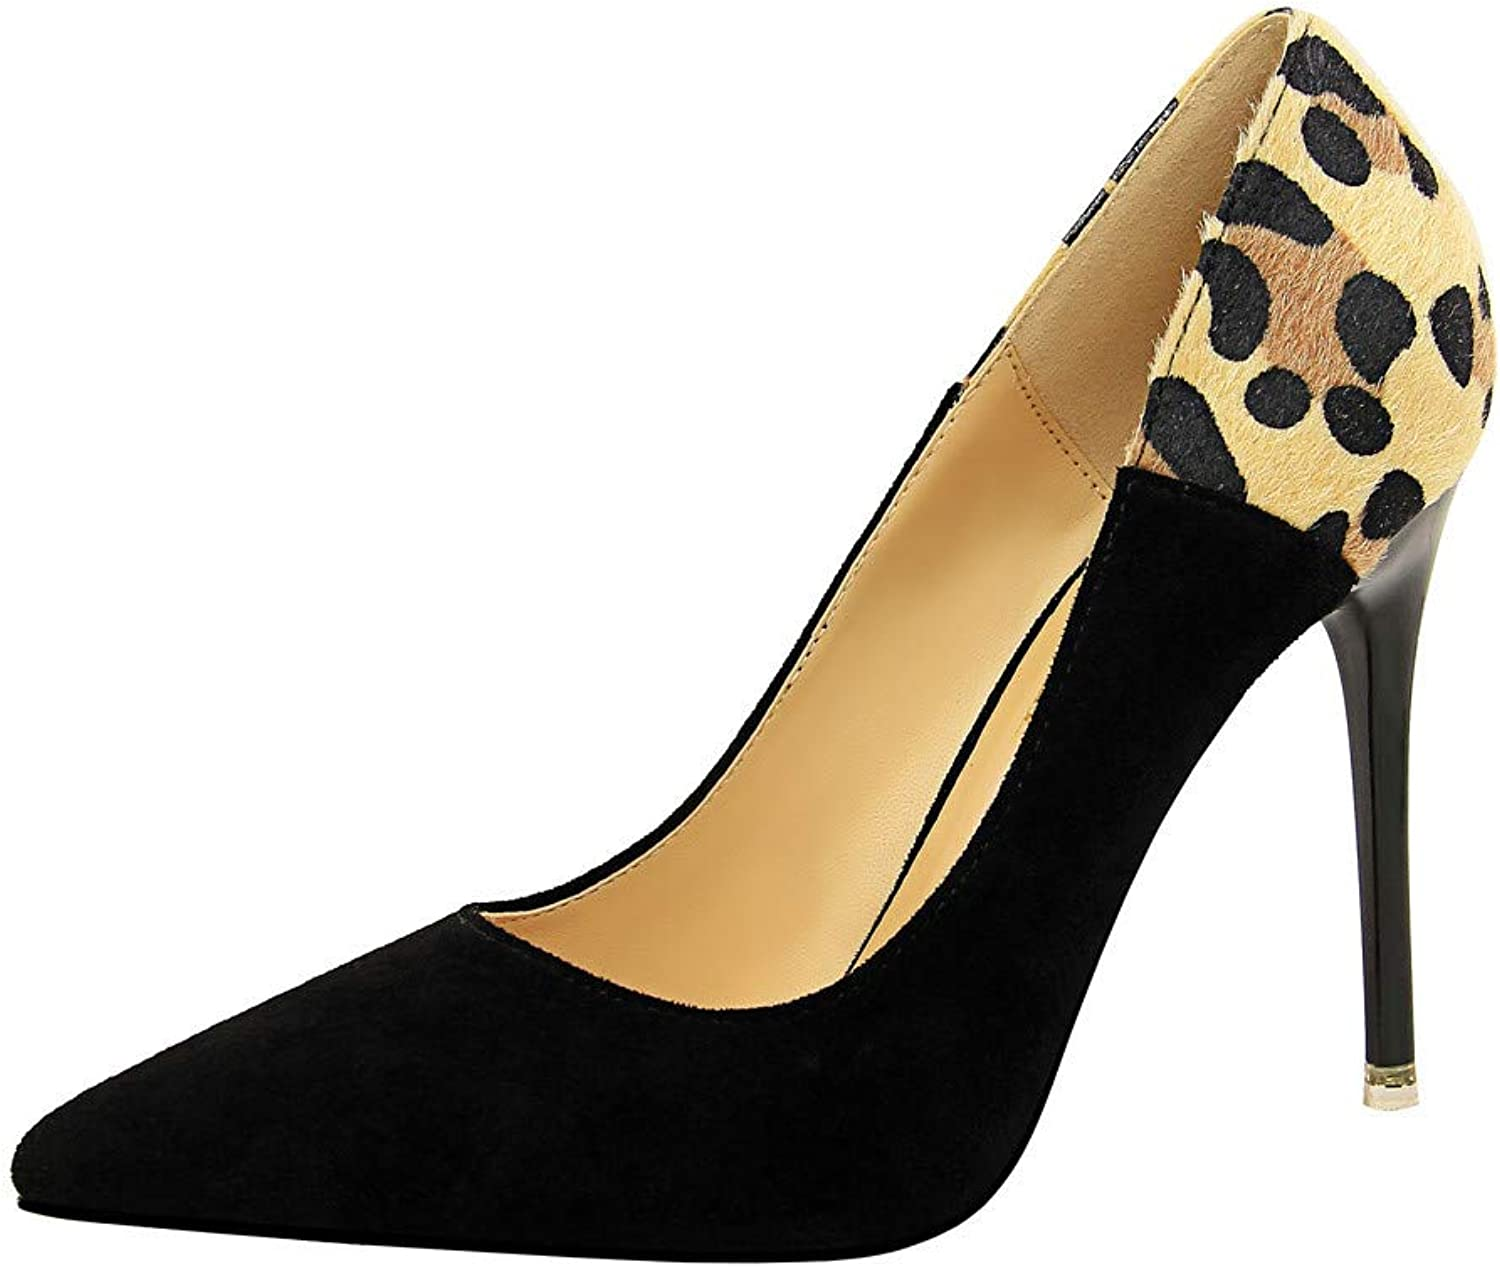 Meimeioo Women's Pointed Toe Stiletto High Heel Pumps Ladies Patchwork Slip On Dress Party shoes